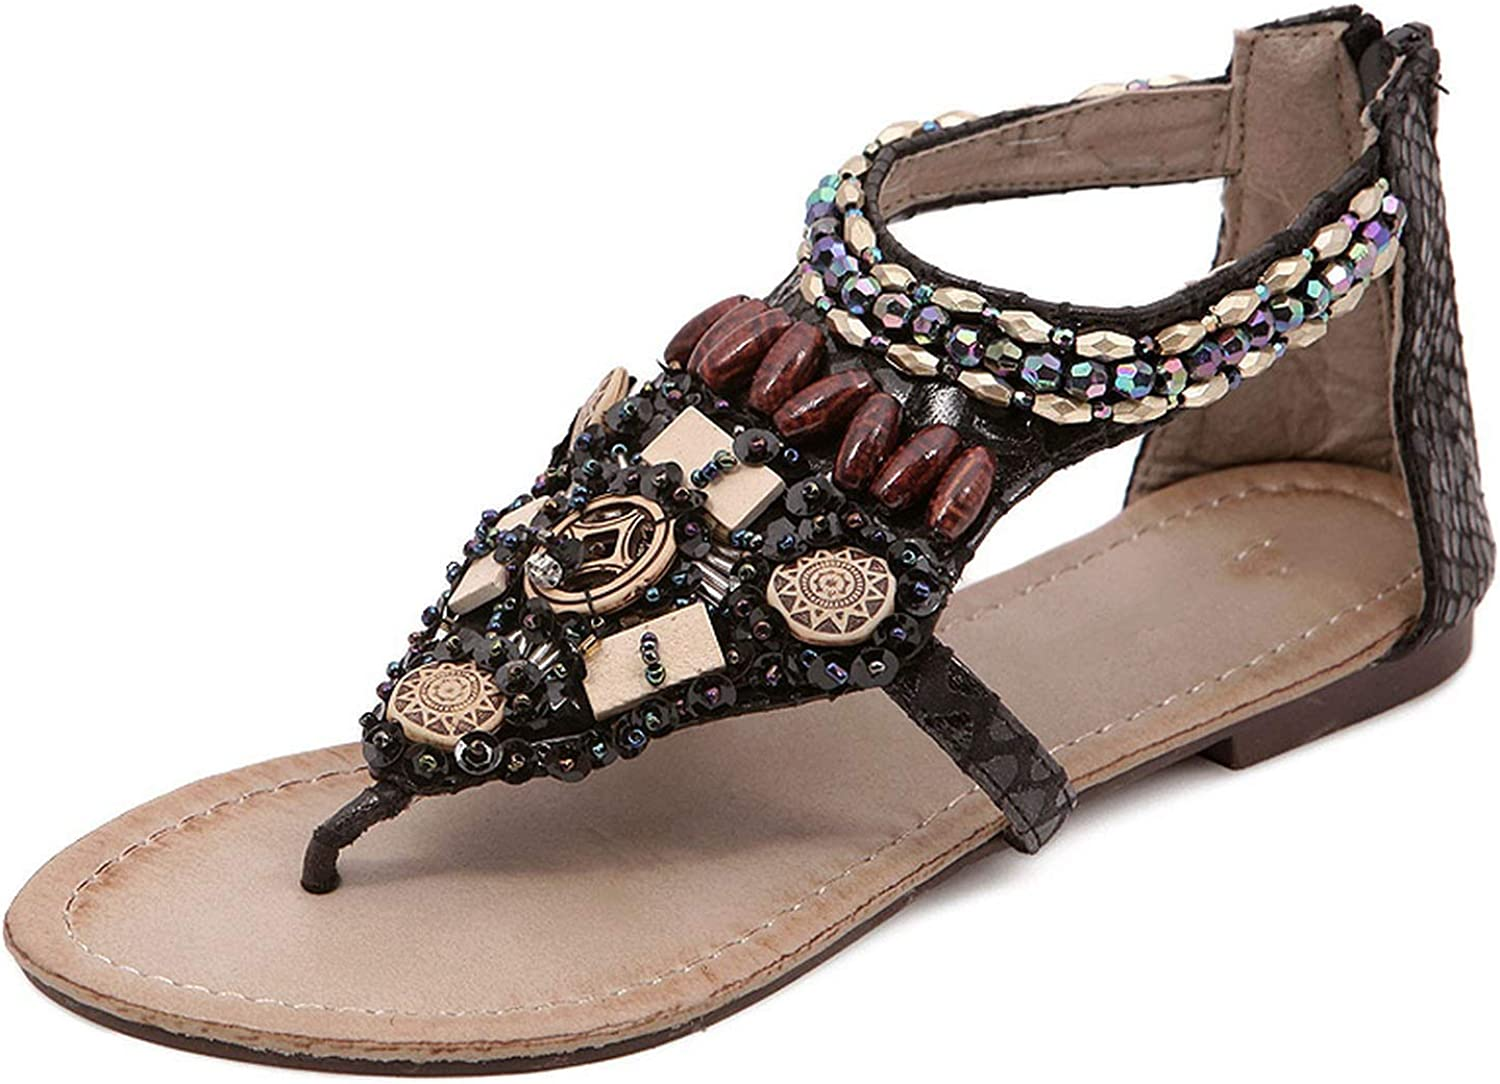 2019 Women Sandals Beading Crystal Pendant Beach shoes Size 35-40